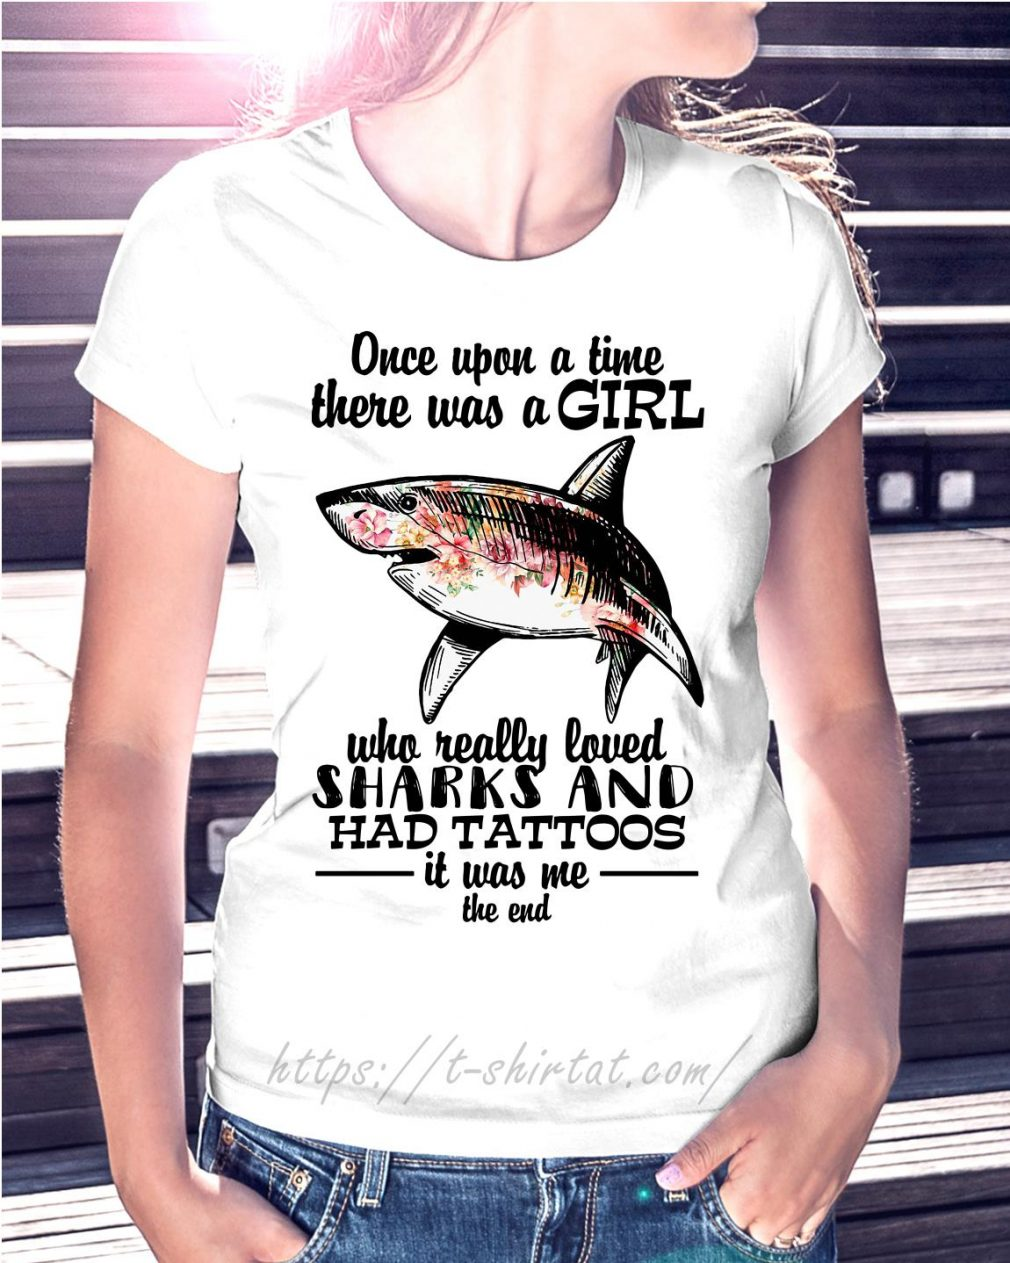 Once upon a time there was a girl who really loved sharks and had tattoos it was me the end